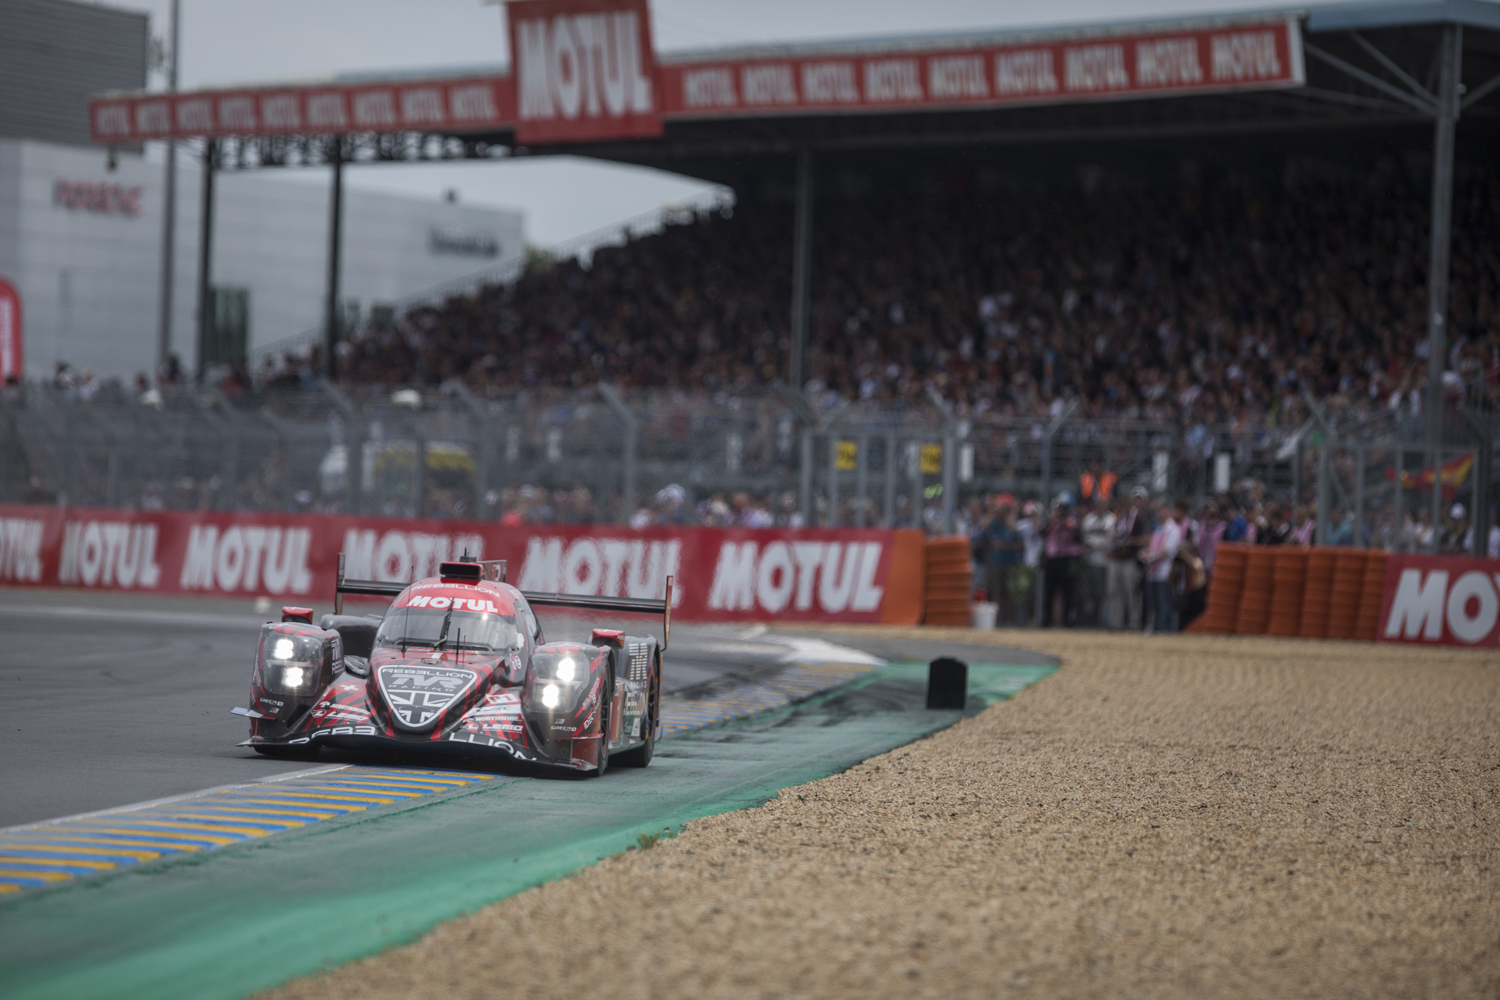 Motul at its best at Le Mans